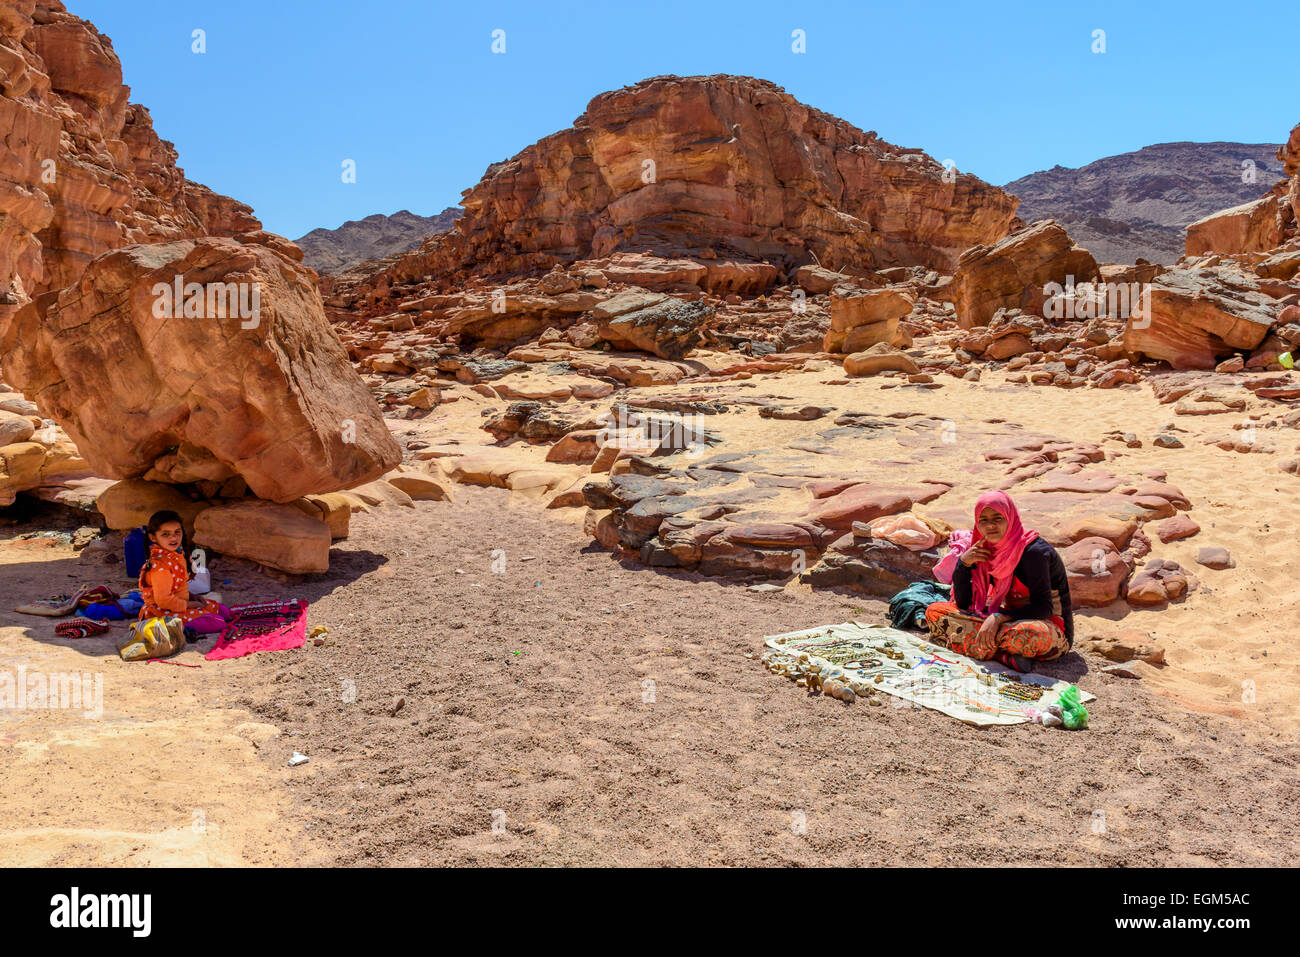 Bedouin kids selling souvenirs in Colored Canyon, Sinai, Egypt. Coloured Canyon is a rock formation and dry riverbed - Stock Image